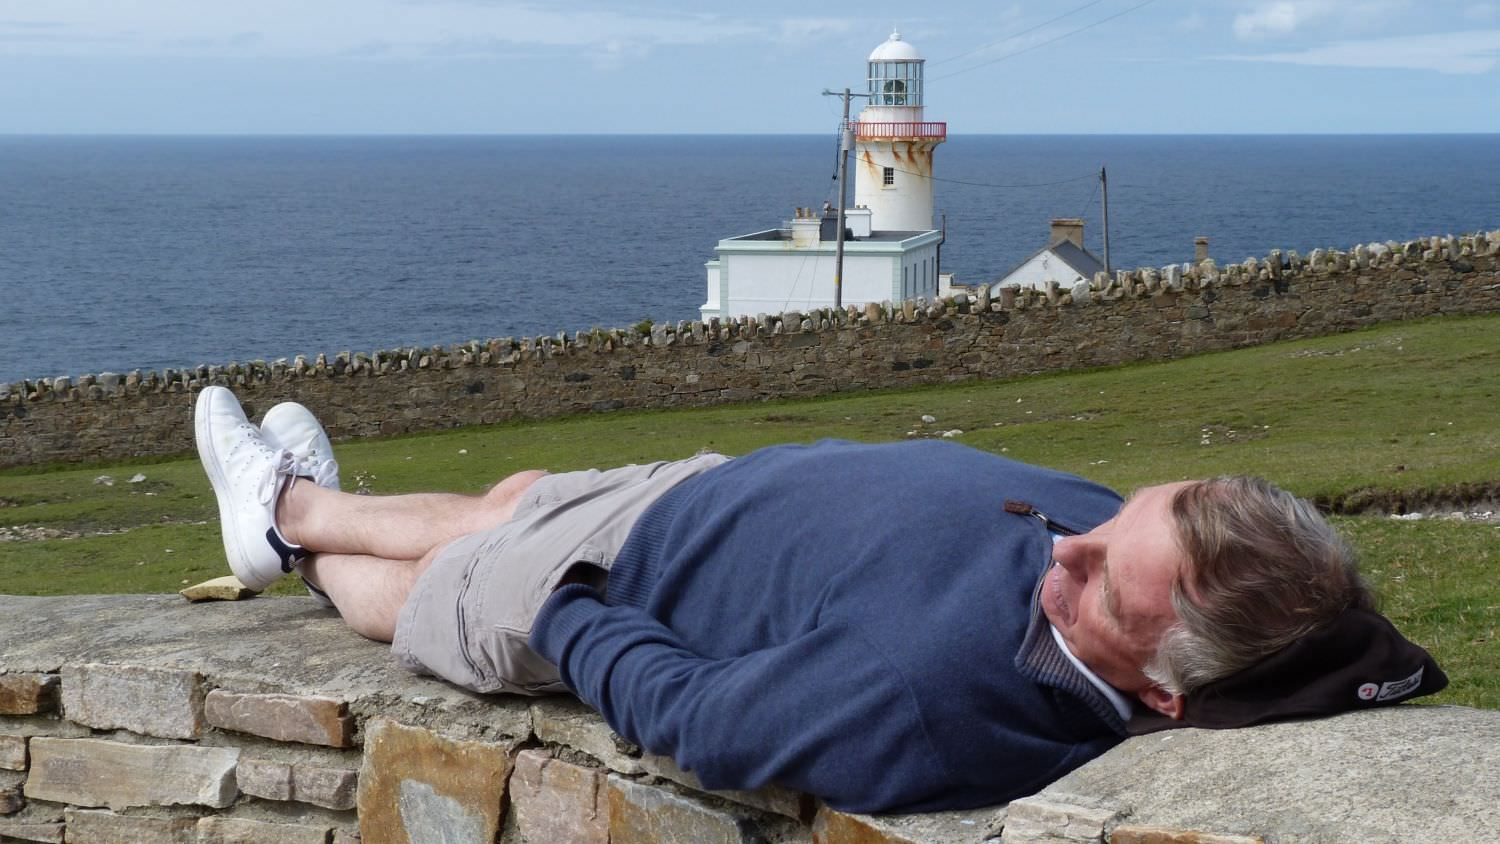 Relaxing at Arranmore Lighthouse